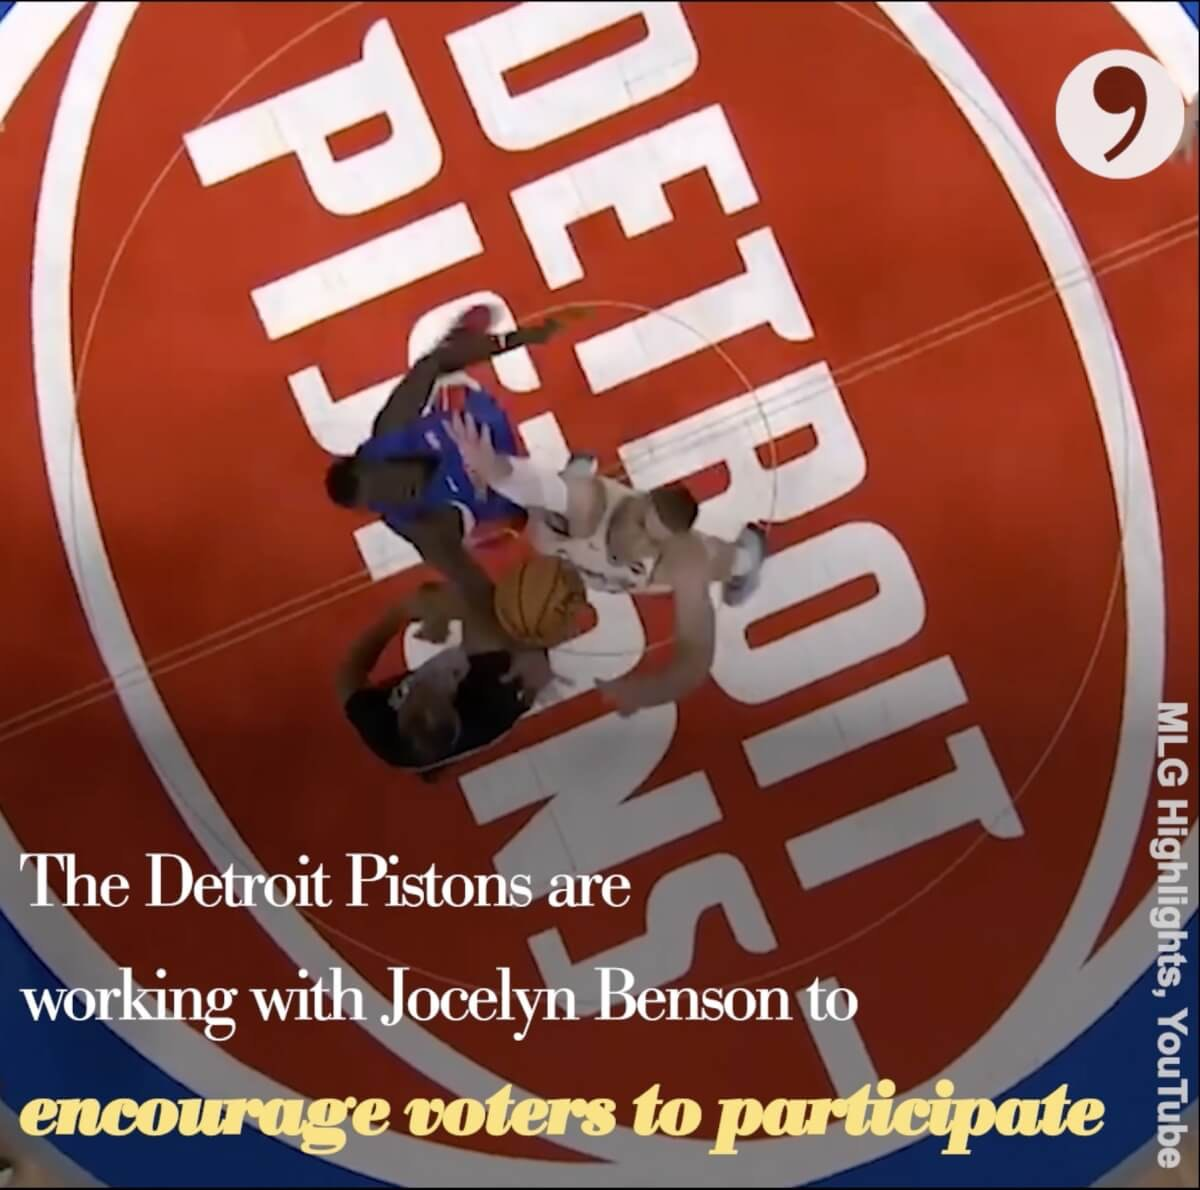 The Detroit Pistons are partnering with Michigan Secretary of State Jocelyn Benson to encourage everyone to vote in upcoming elections.